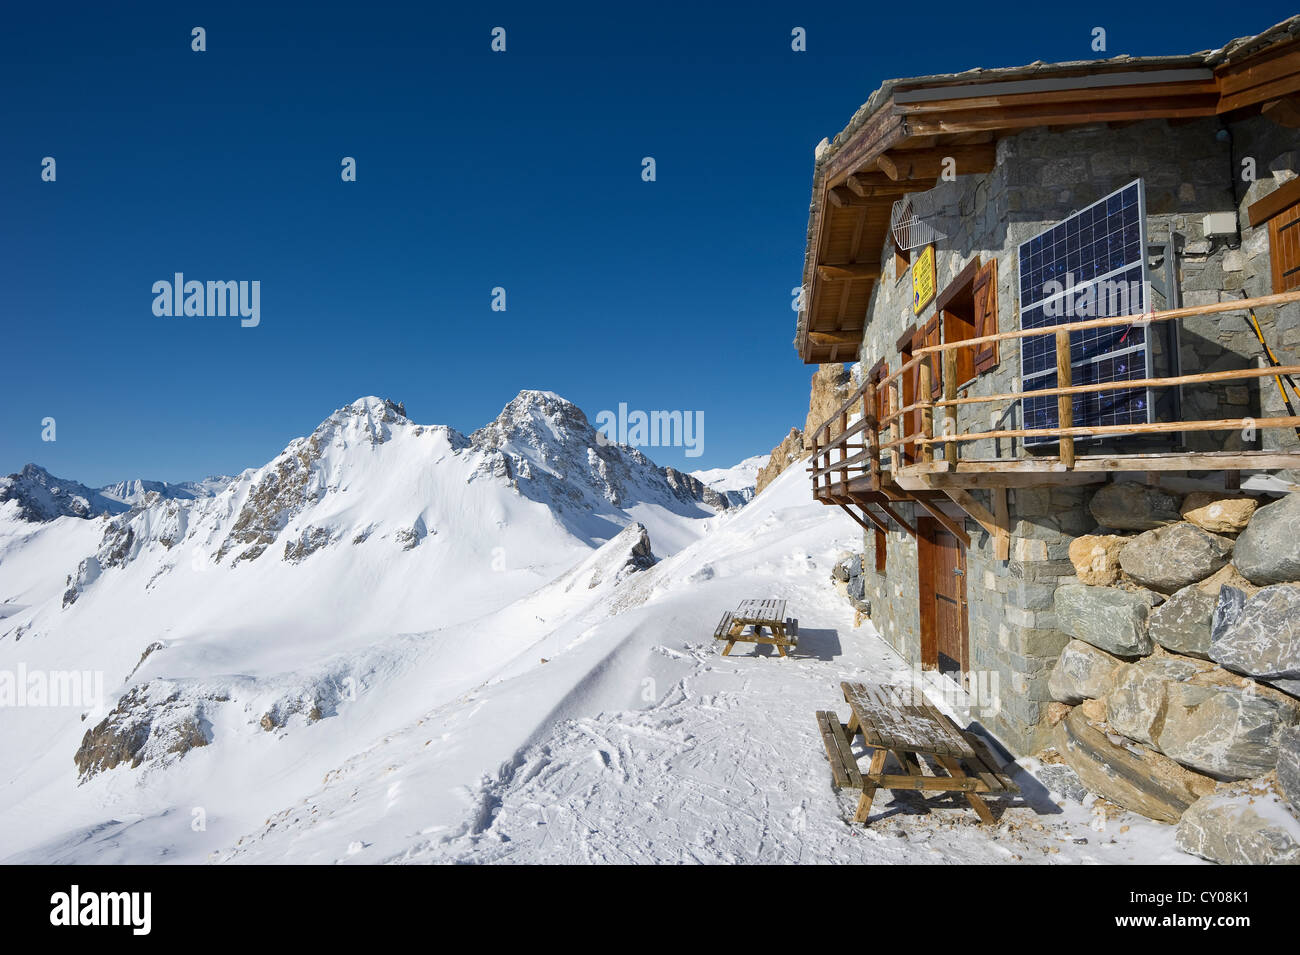 Mountain cabin, Aiguille Percee, Tignes, Val d'Isere, Savoie, Alps, France, Europe - Stock Image